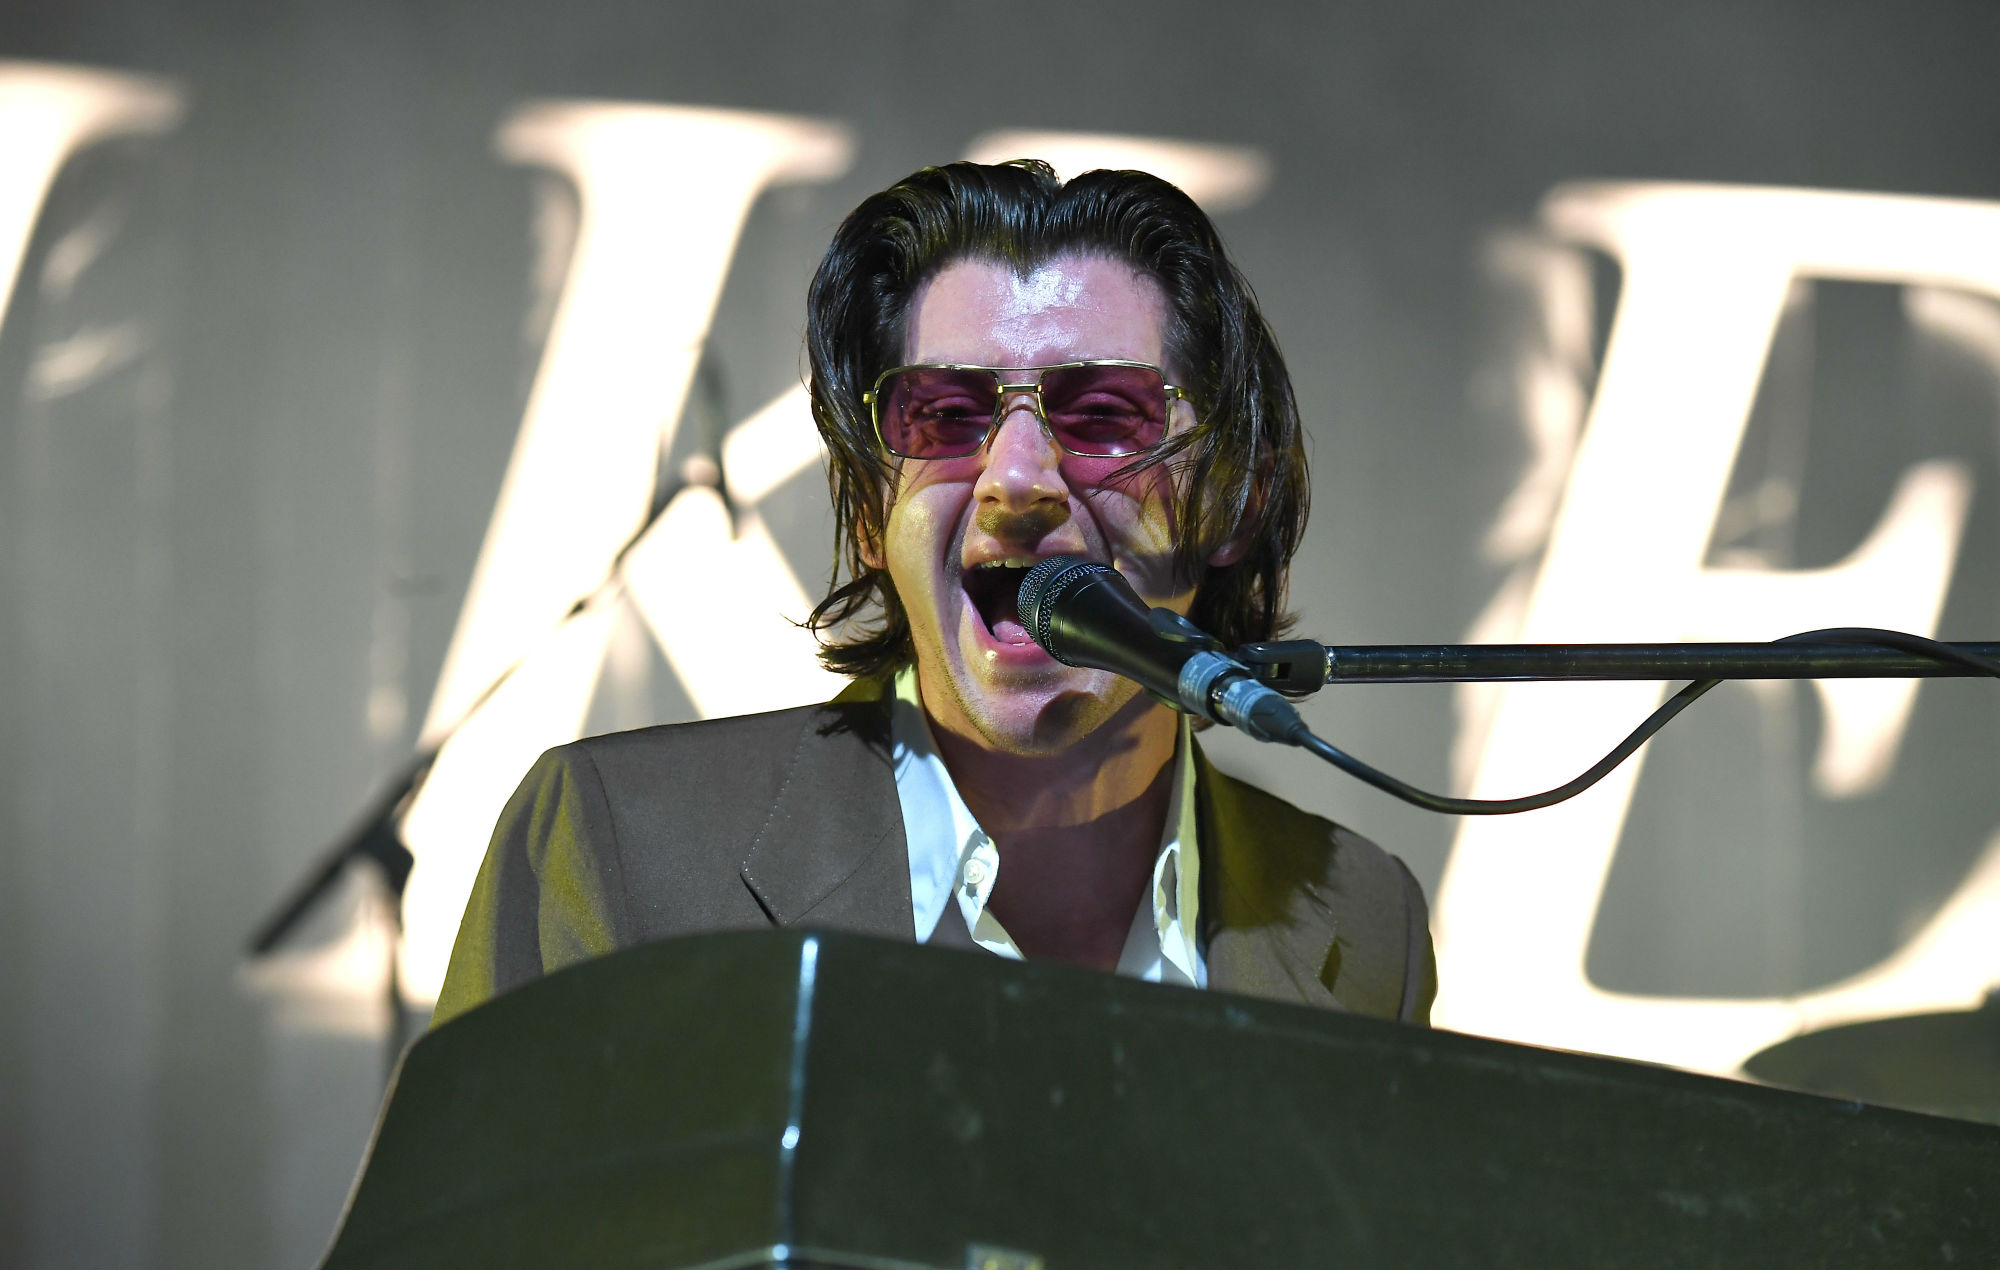 NME Festival blog: Alex Turner says he 'likes the idea that he'd be making music' in 40 years' time